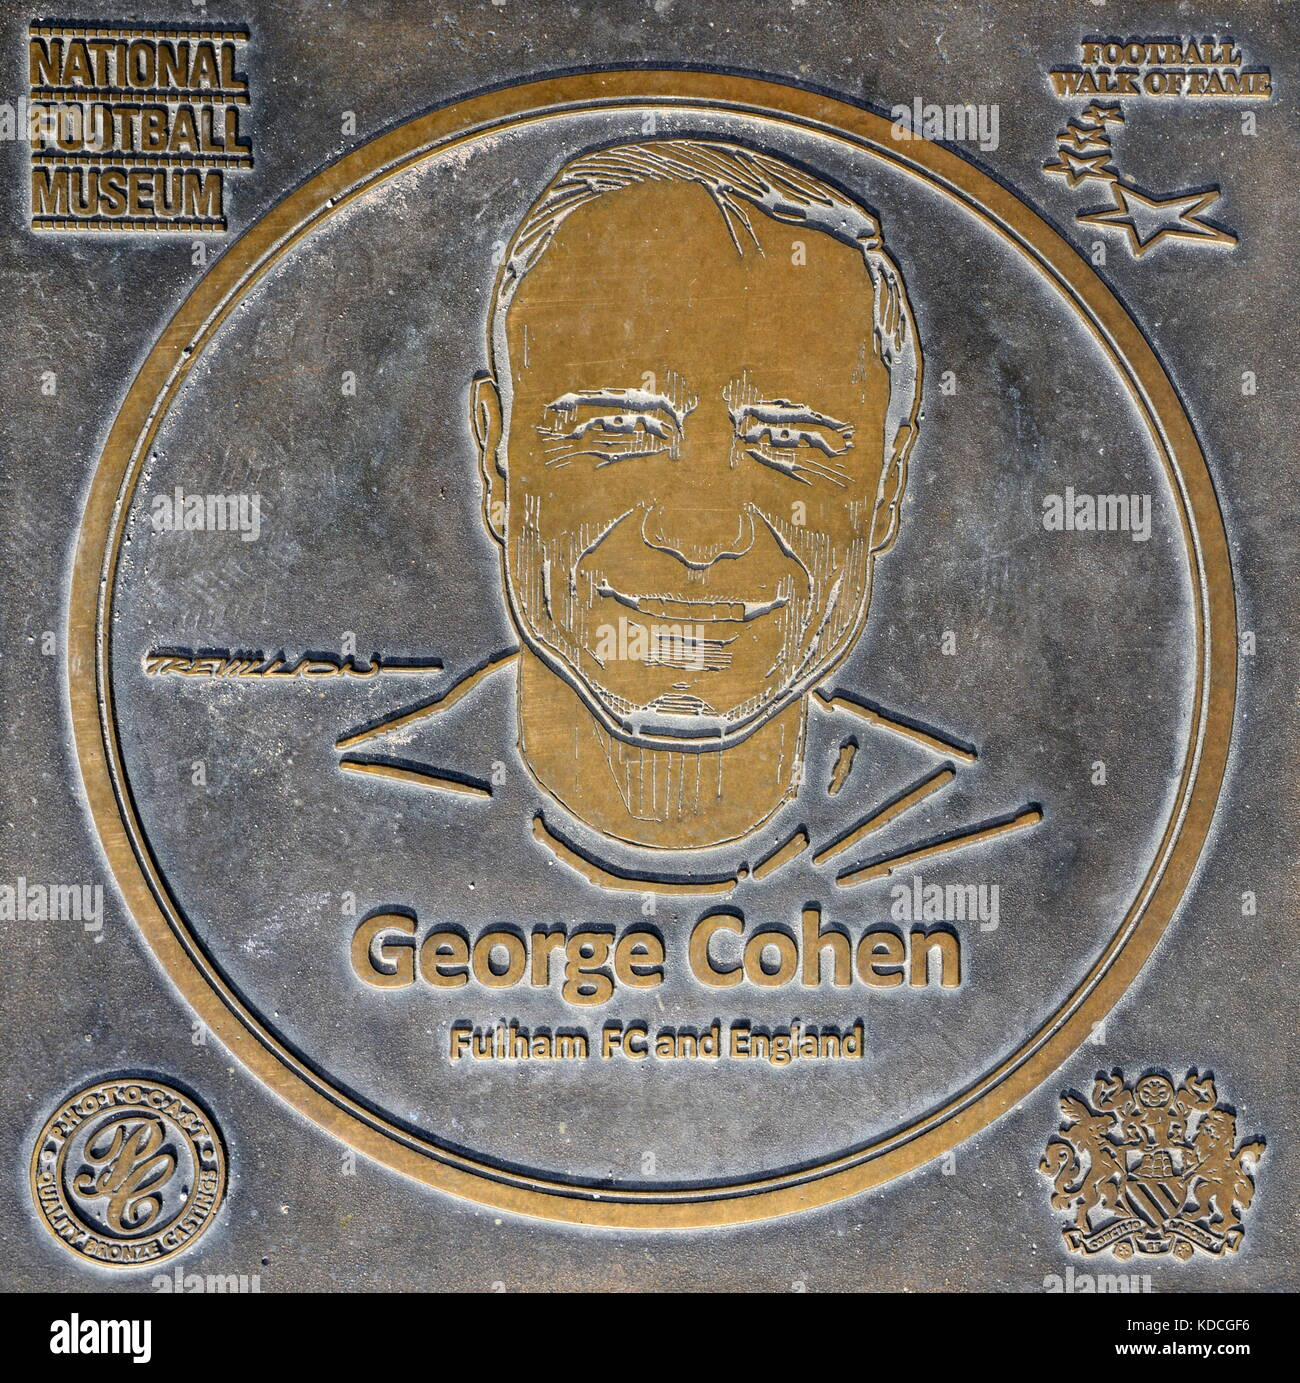 George Cohen Plaque at National Football Museum - Stock Image